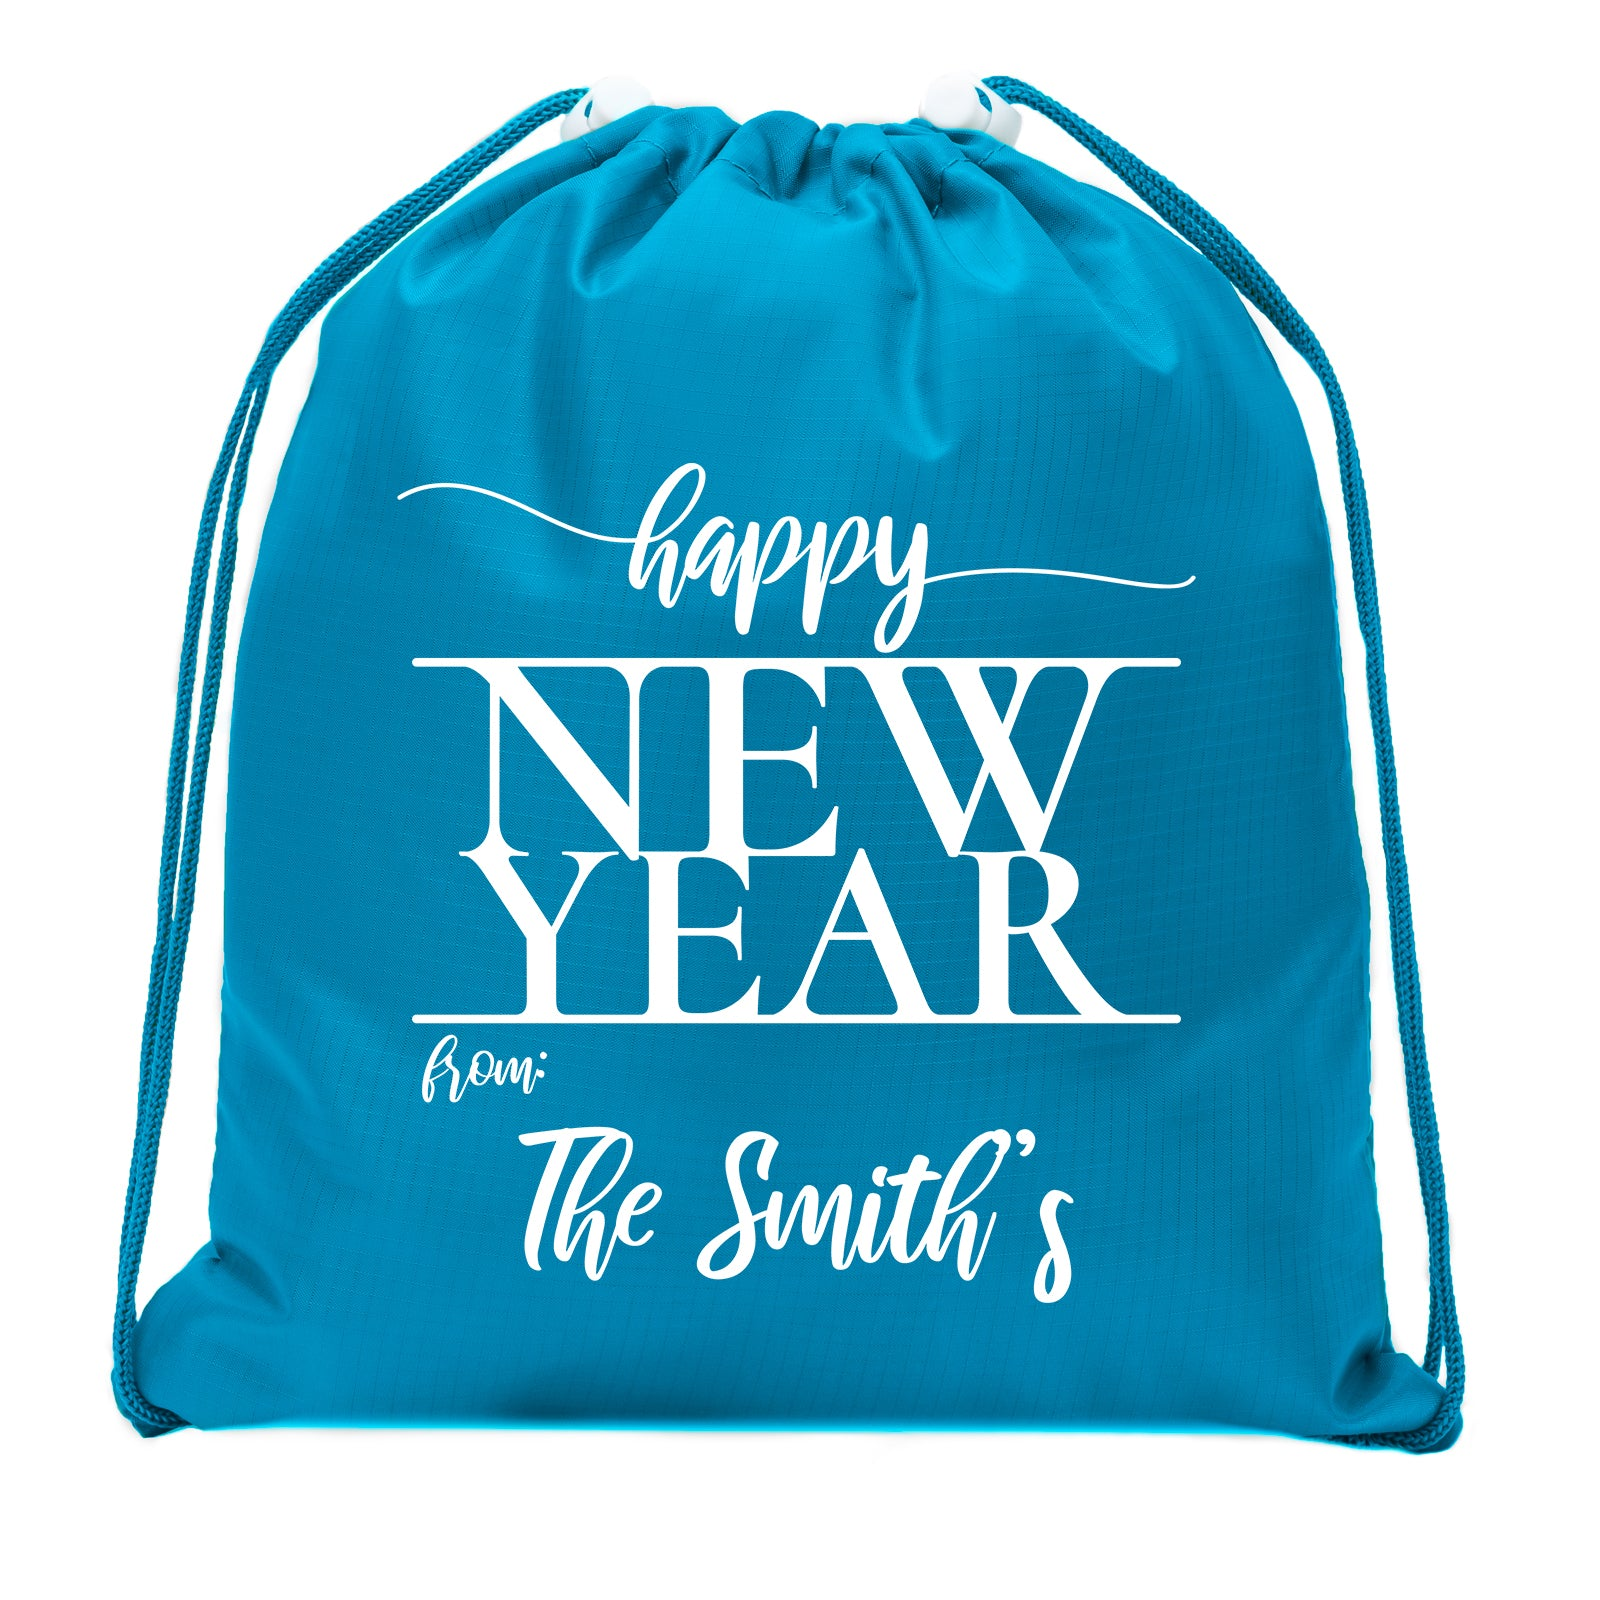 Accessory - New Year's Eve Party Goody Bags, Table Top New Years Decorations, 2019 Gift Bags - Confetti